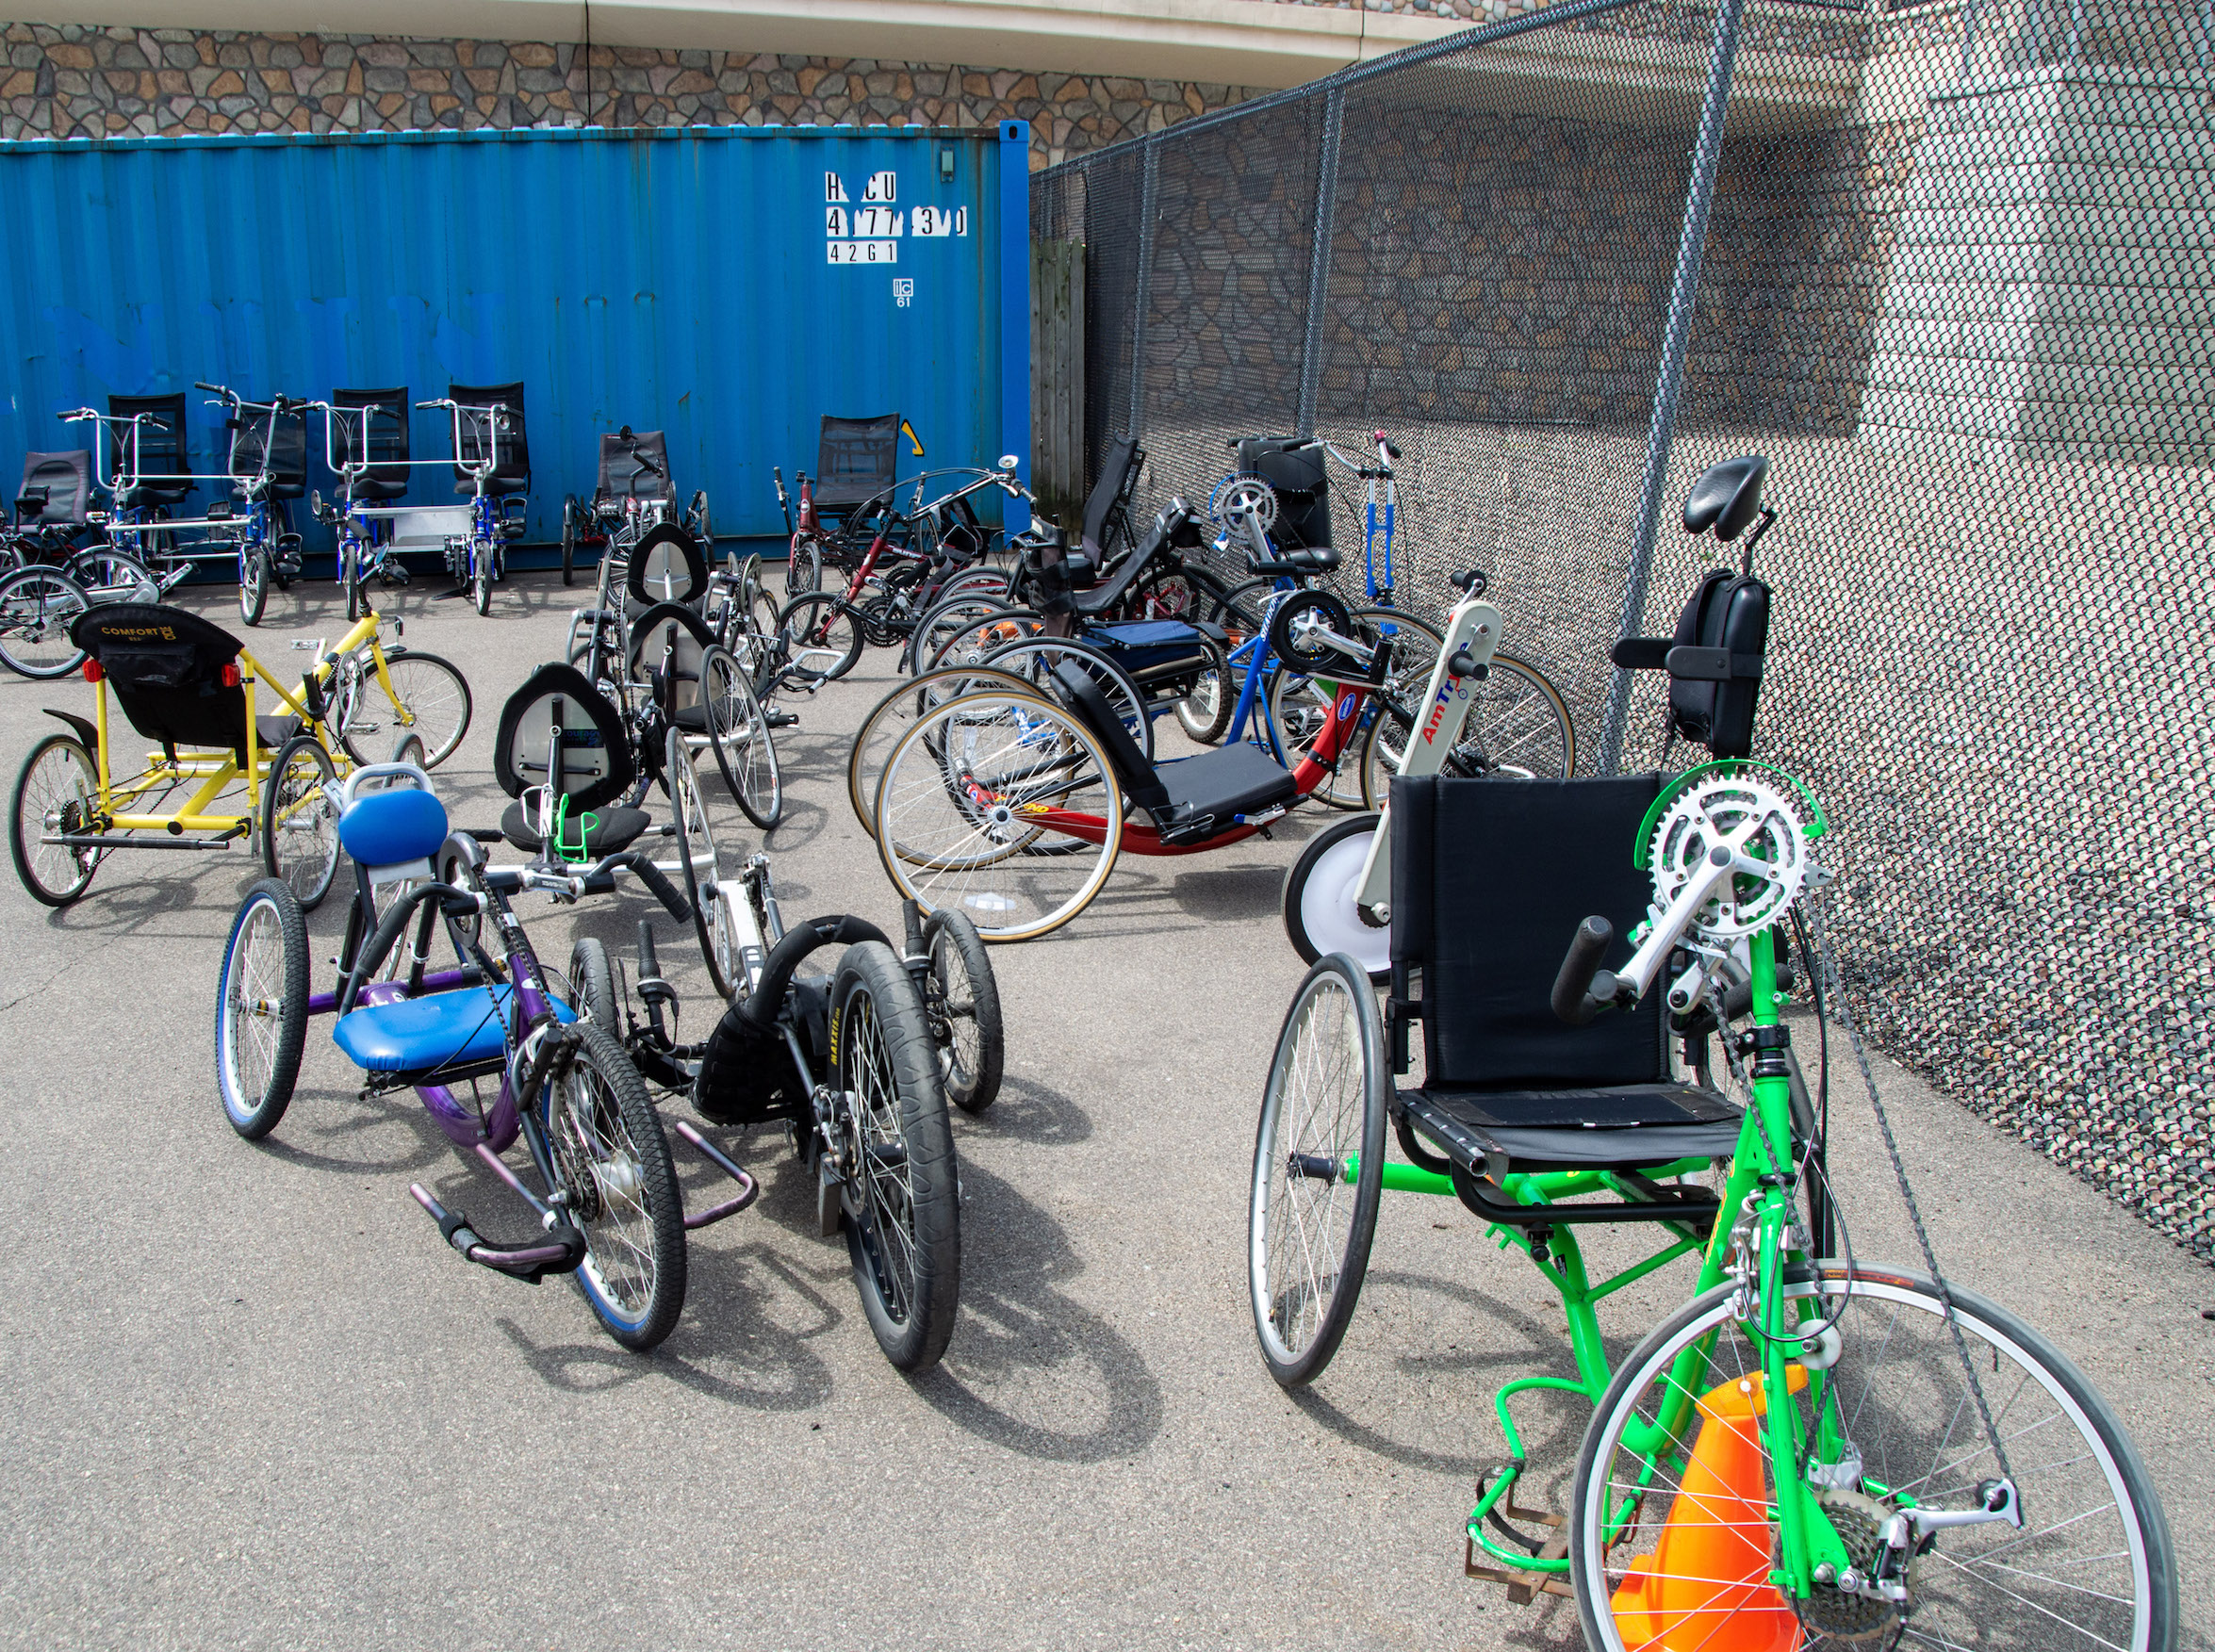 Twin Cities Adaptive Cycling offers recumbent tricycles that users can pedal with their hands or their feet. The organization can modify bikes for people who only have mobility on one side of their body. Submitted photo